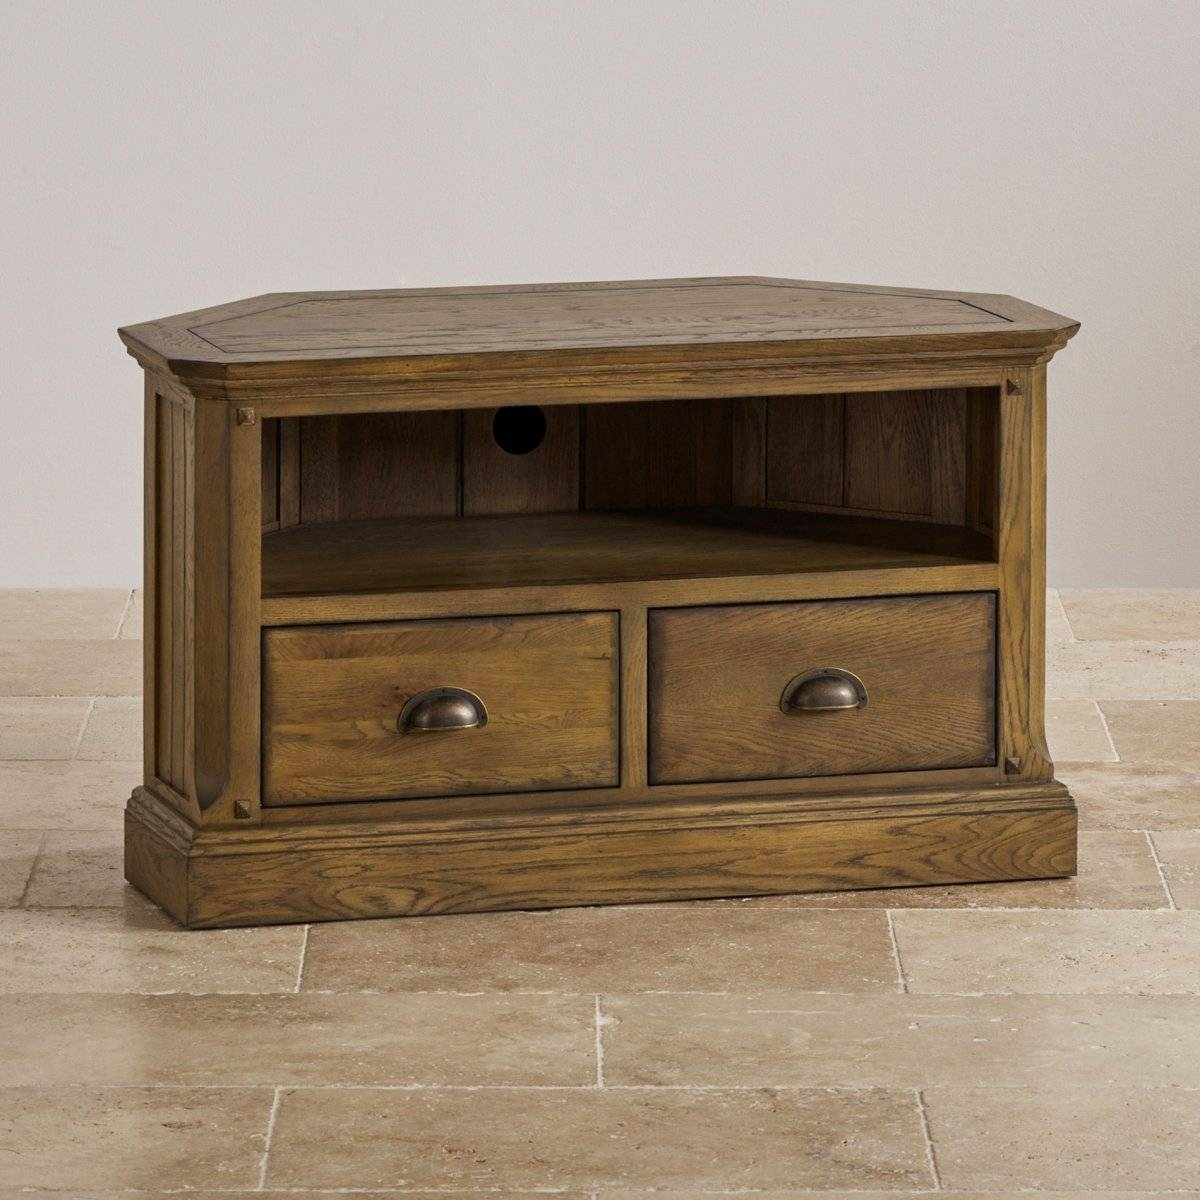 Manor House Corner Tv Cabinet In Solid Oak | Oak Furniture Land With Regard To Solid Oak Corner Tv Cabinets (View 10 of 15)